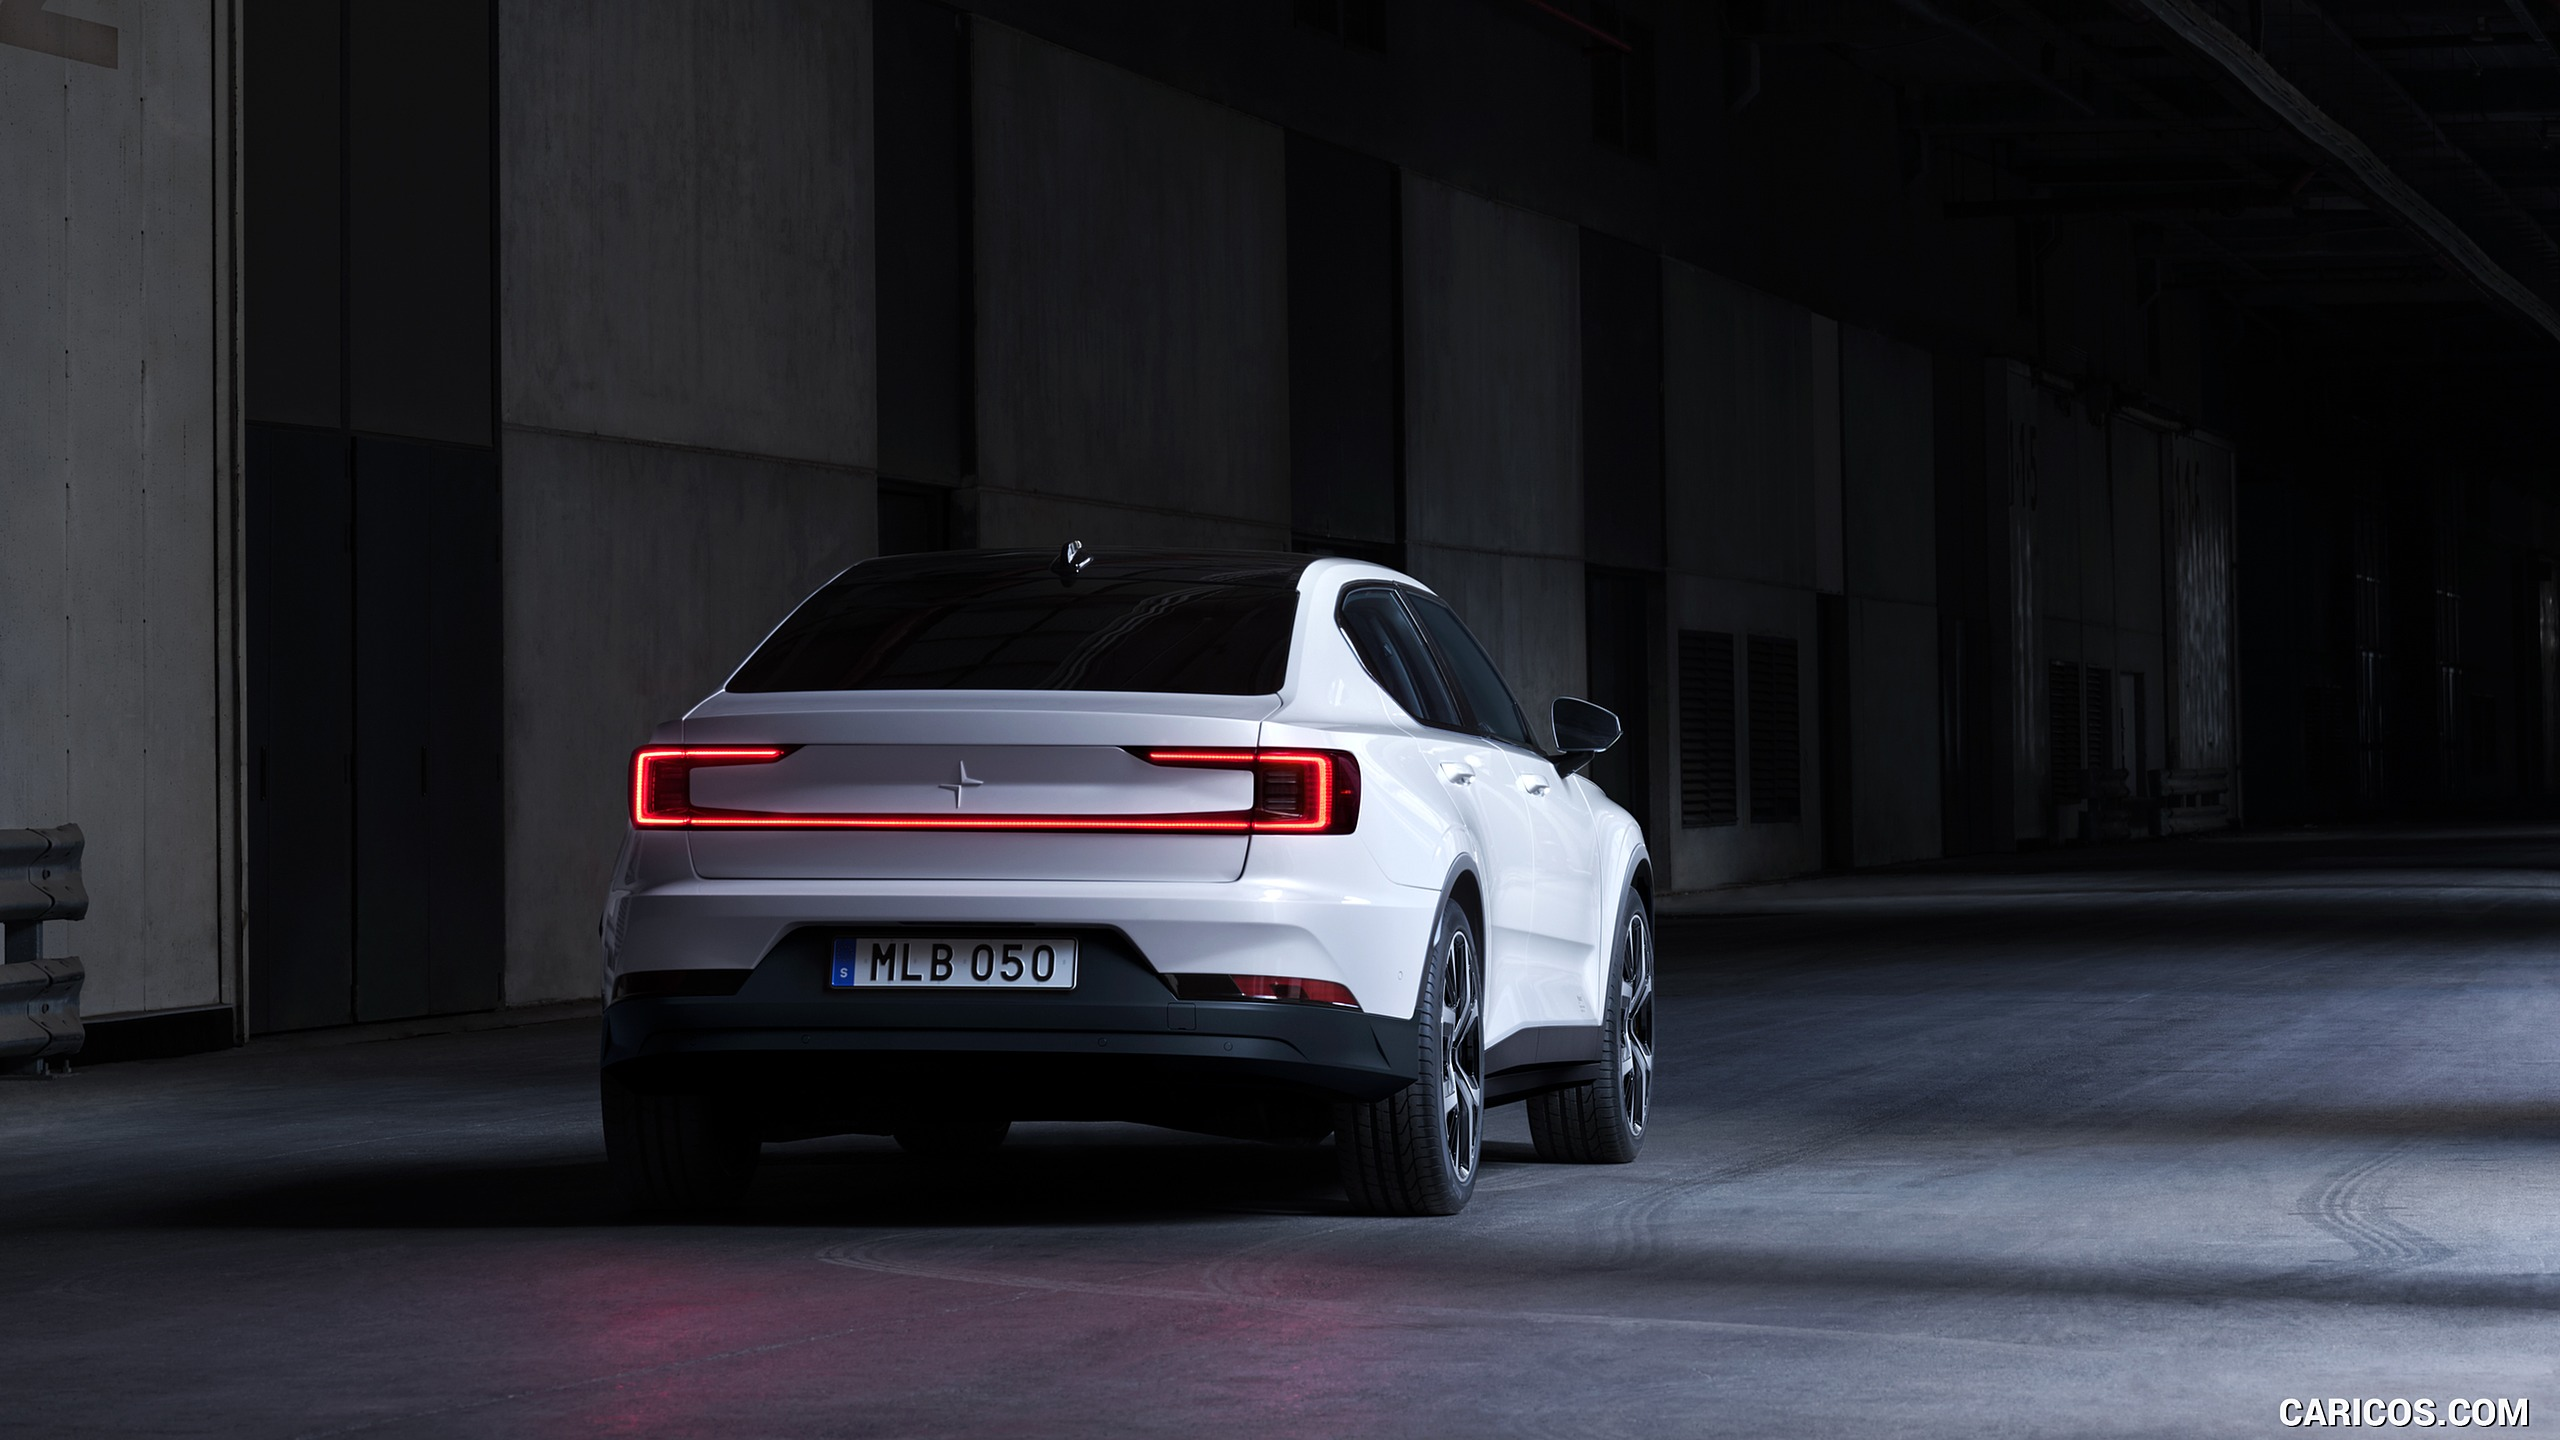 2020 Polestar 2   Rear HD Wallpaper 7 2560x1440